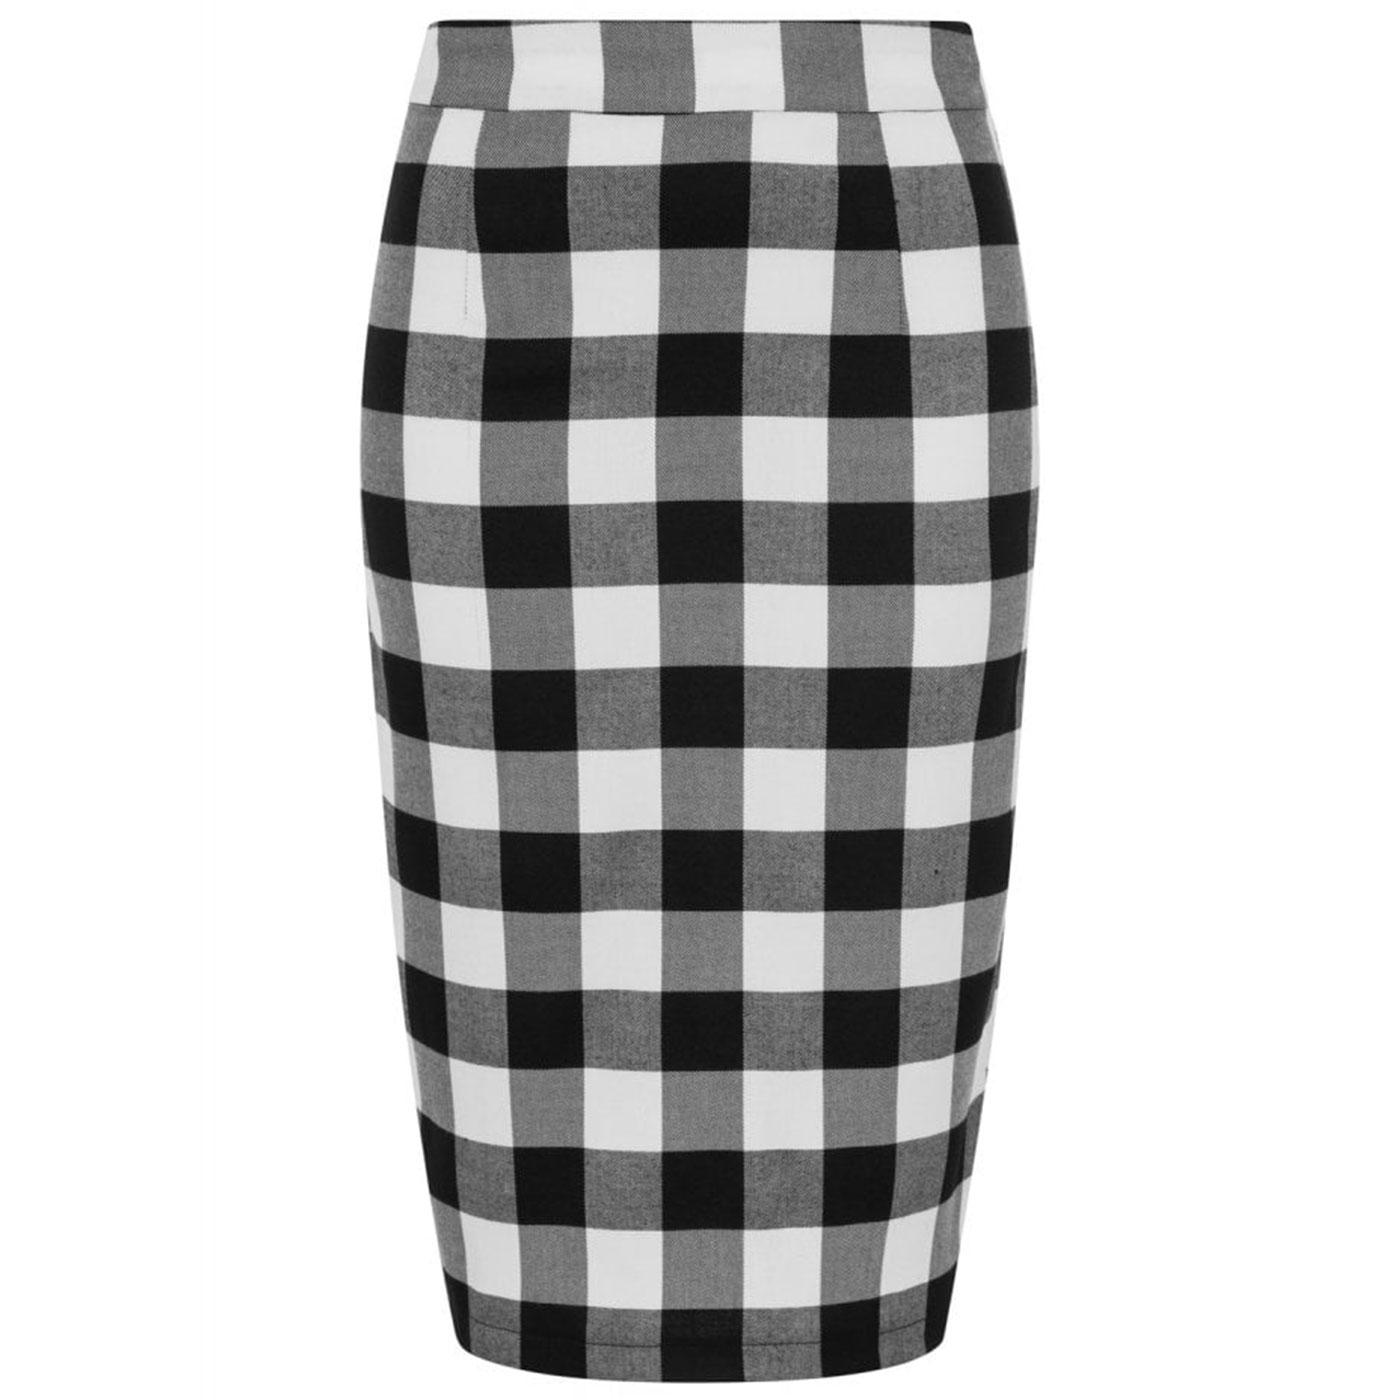 c45455ae8 COLLECTIF Polly 50s Retro Gingham Pencil Skirt Blk/Wht